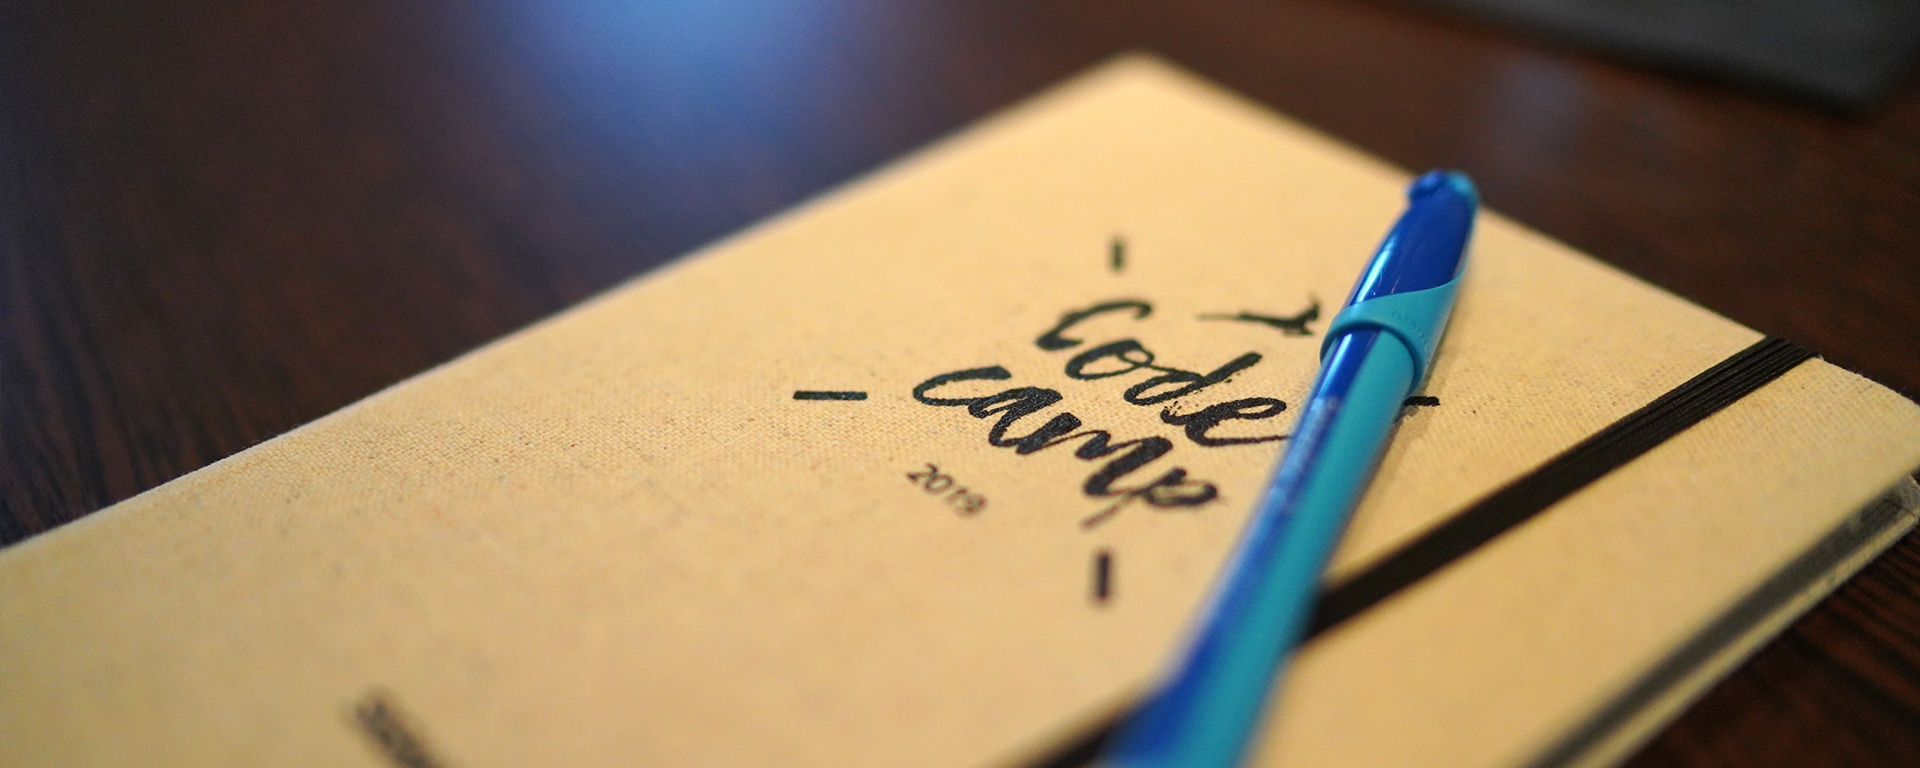 Code Camp 2019 notebook with pen